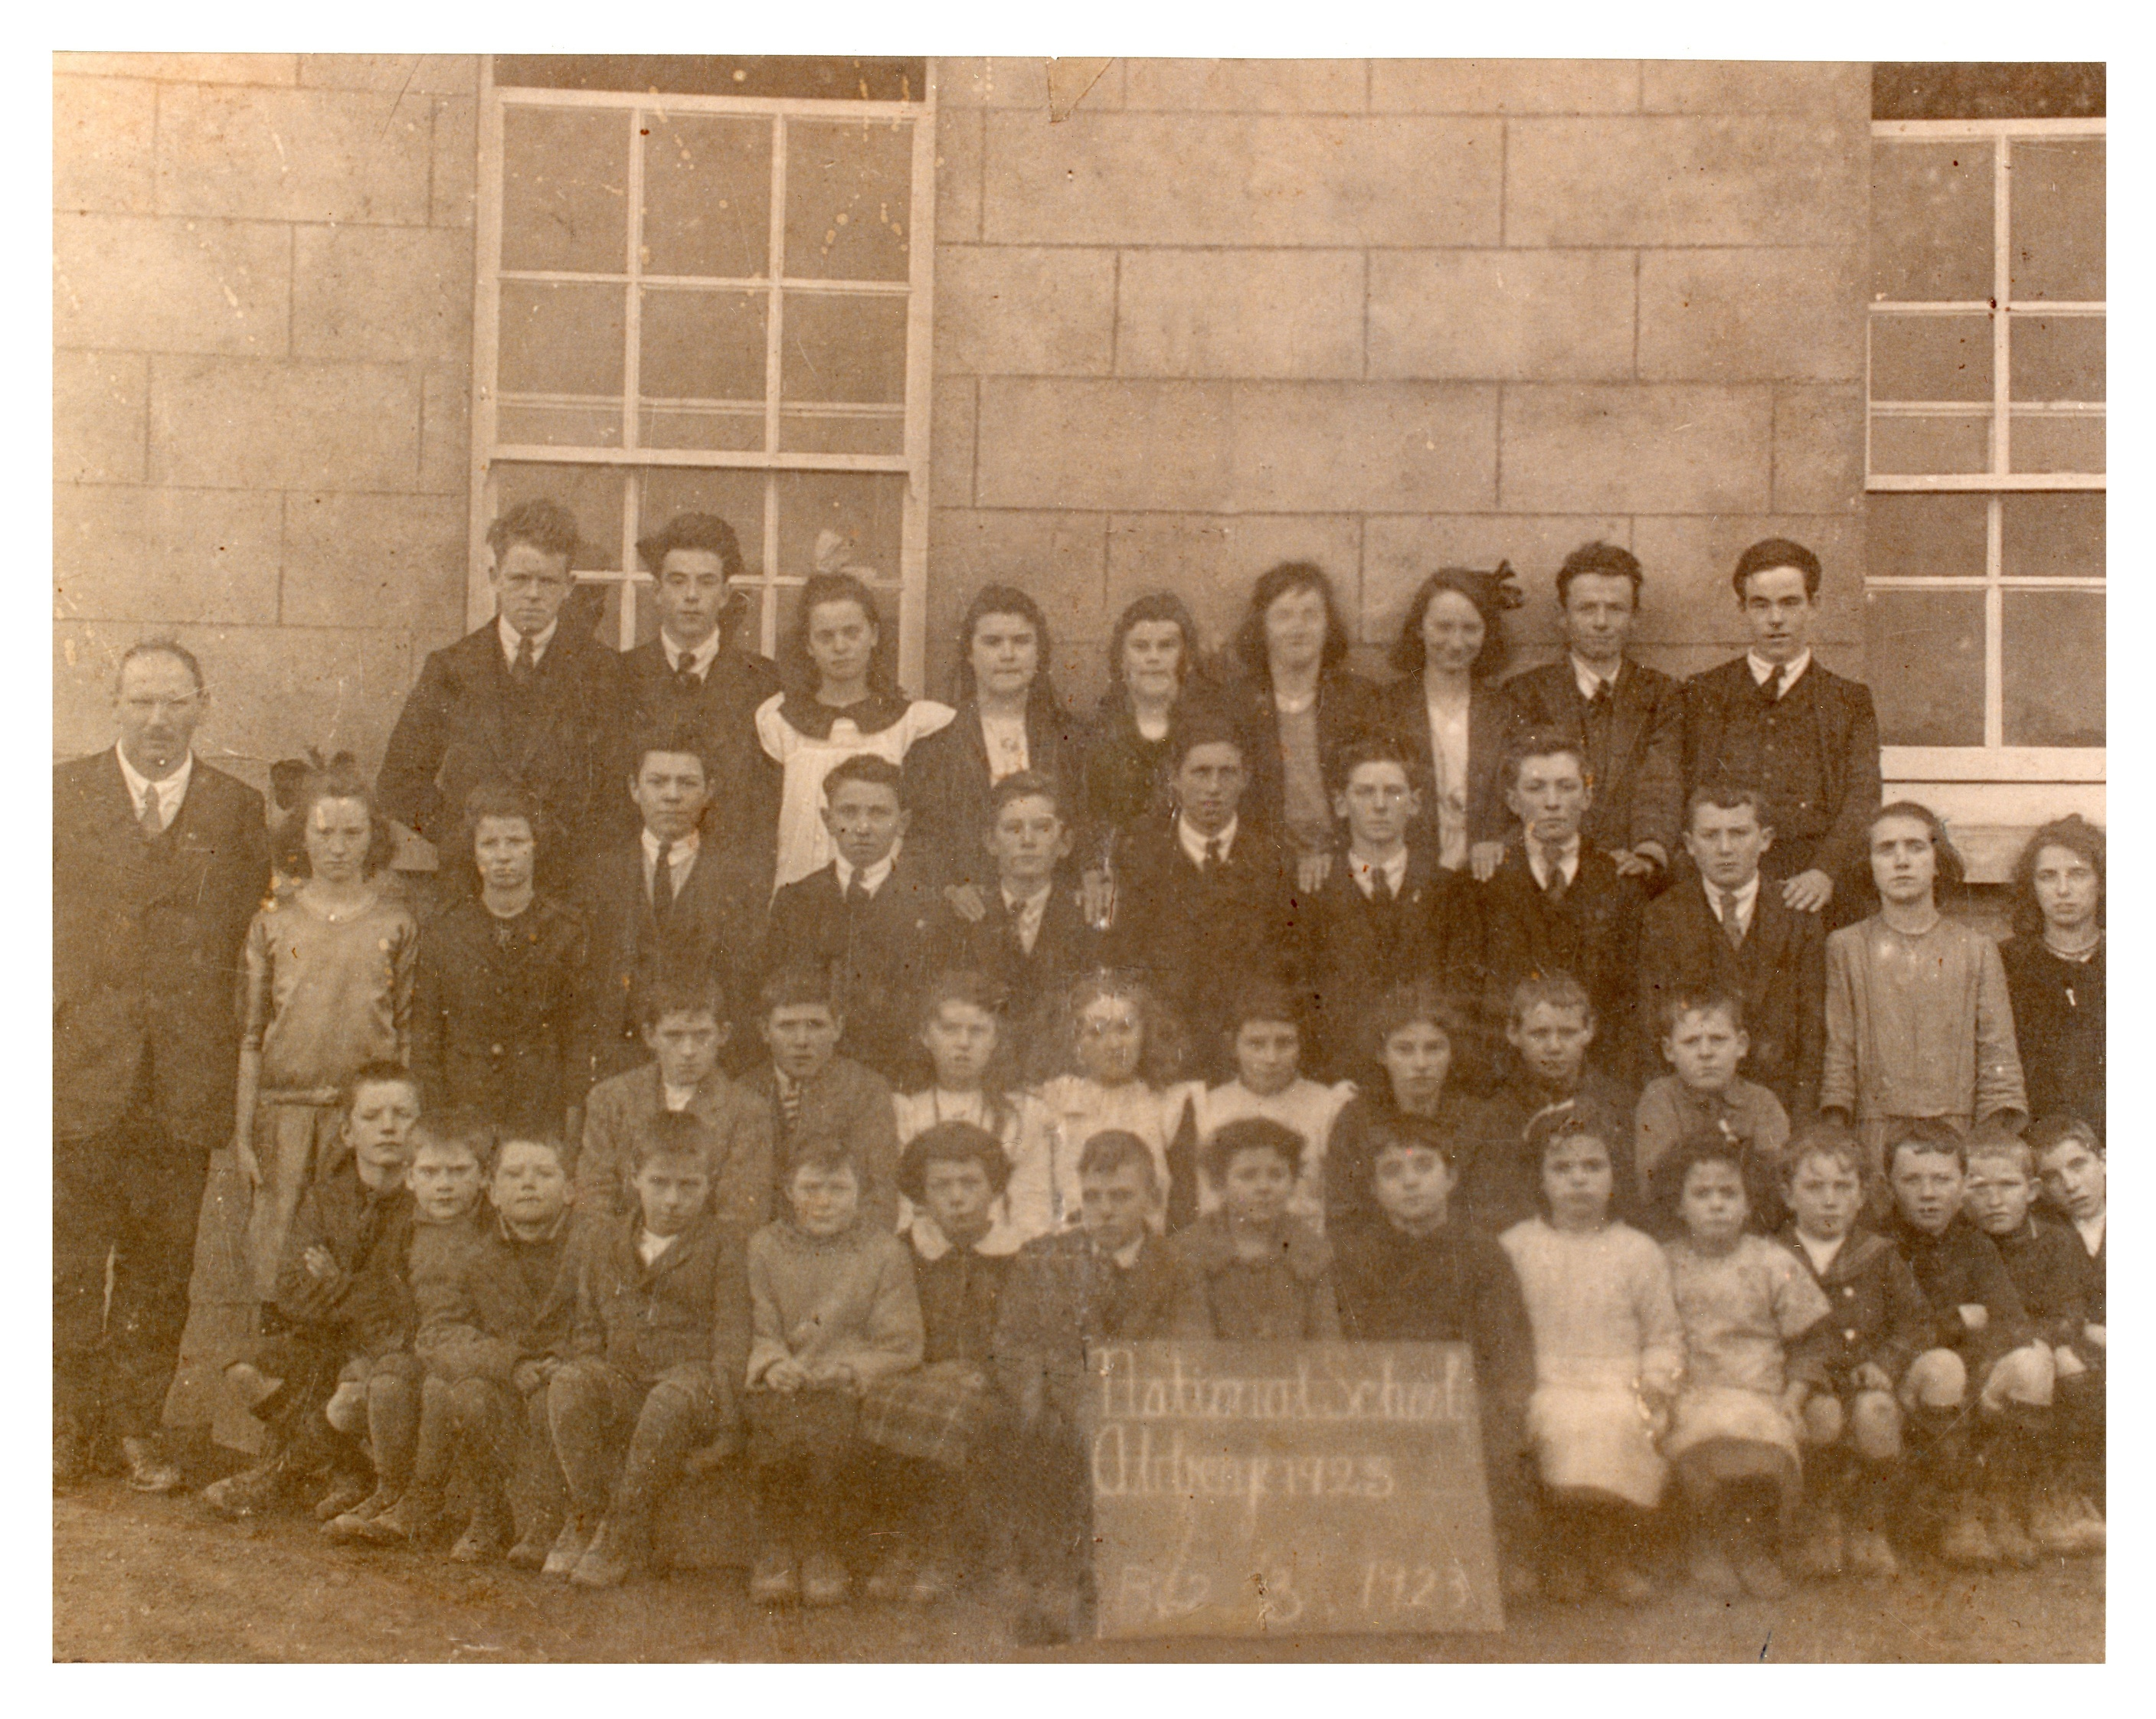 Back Row left to right: Harry Donnelly, Pete Ryan, Annie Abberton, Mary E Kelly, ?, Ellen Finnegan, Bridie Abberton, Bertie Donnelly, Jacko Ryan. Next Row l to r: Master Power, Gretta Abberton, Mary Frances Sullivan, Ned Larkin, Tommie Abberton, Connie Donnelly, Tom Joe Conroy, Pakie Callanan, John Coughlan, Joe Hynes, Mary Anne Watson, Rose Martin. Next Row l to r: ?, Tommy Watson, Katie Madden, Mary Anne Fahy, May Burke, Bab Donnelly, Michael Fahy, ?. Front Row seated l to r: ??? We have four names: Sonny Callinan, Larry Collins, ??? Bridget Kelly and Kathleen Kelly. Photo courtesy John Ryan.